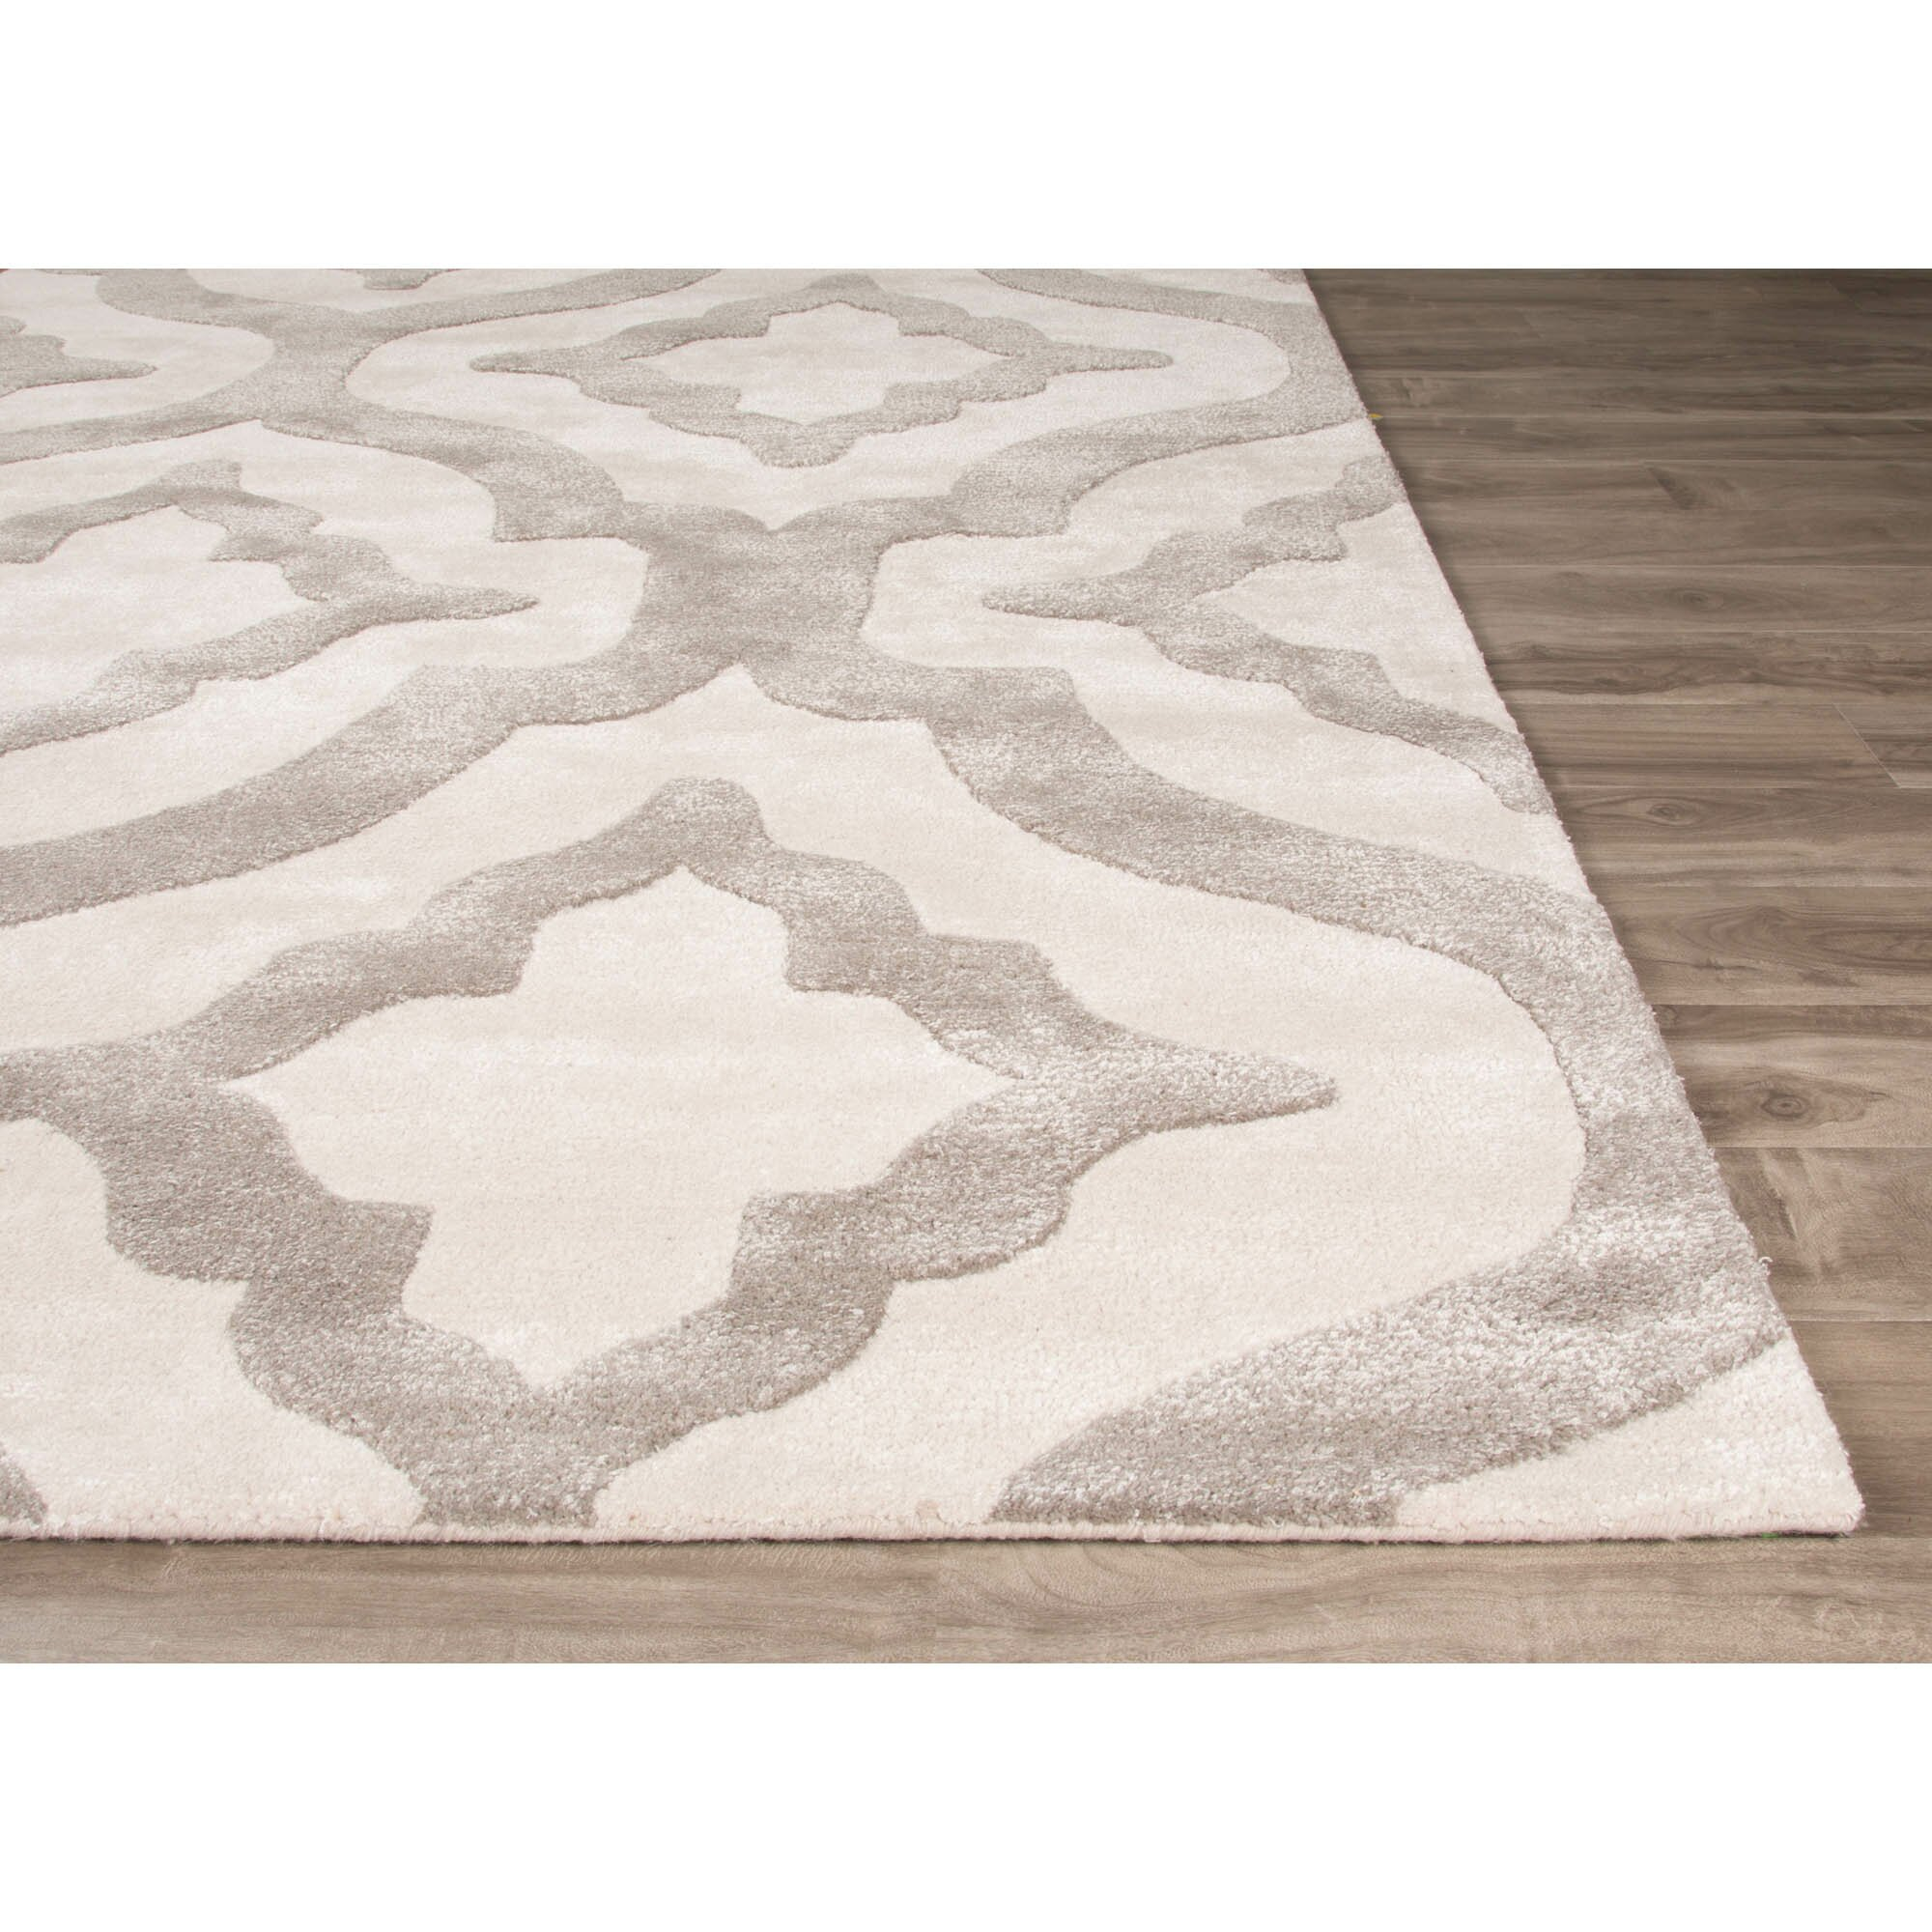 Jaipurliving City Hand Tufted Ivory White Area Rug Wayfair